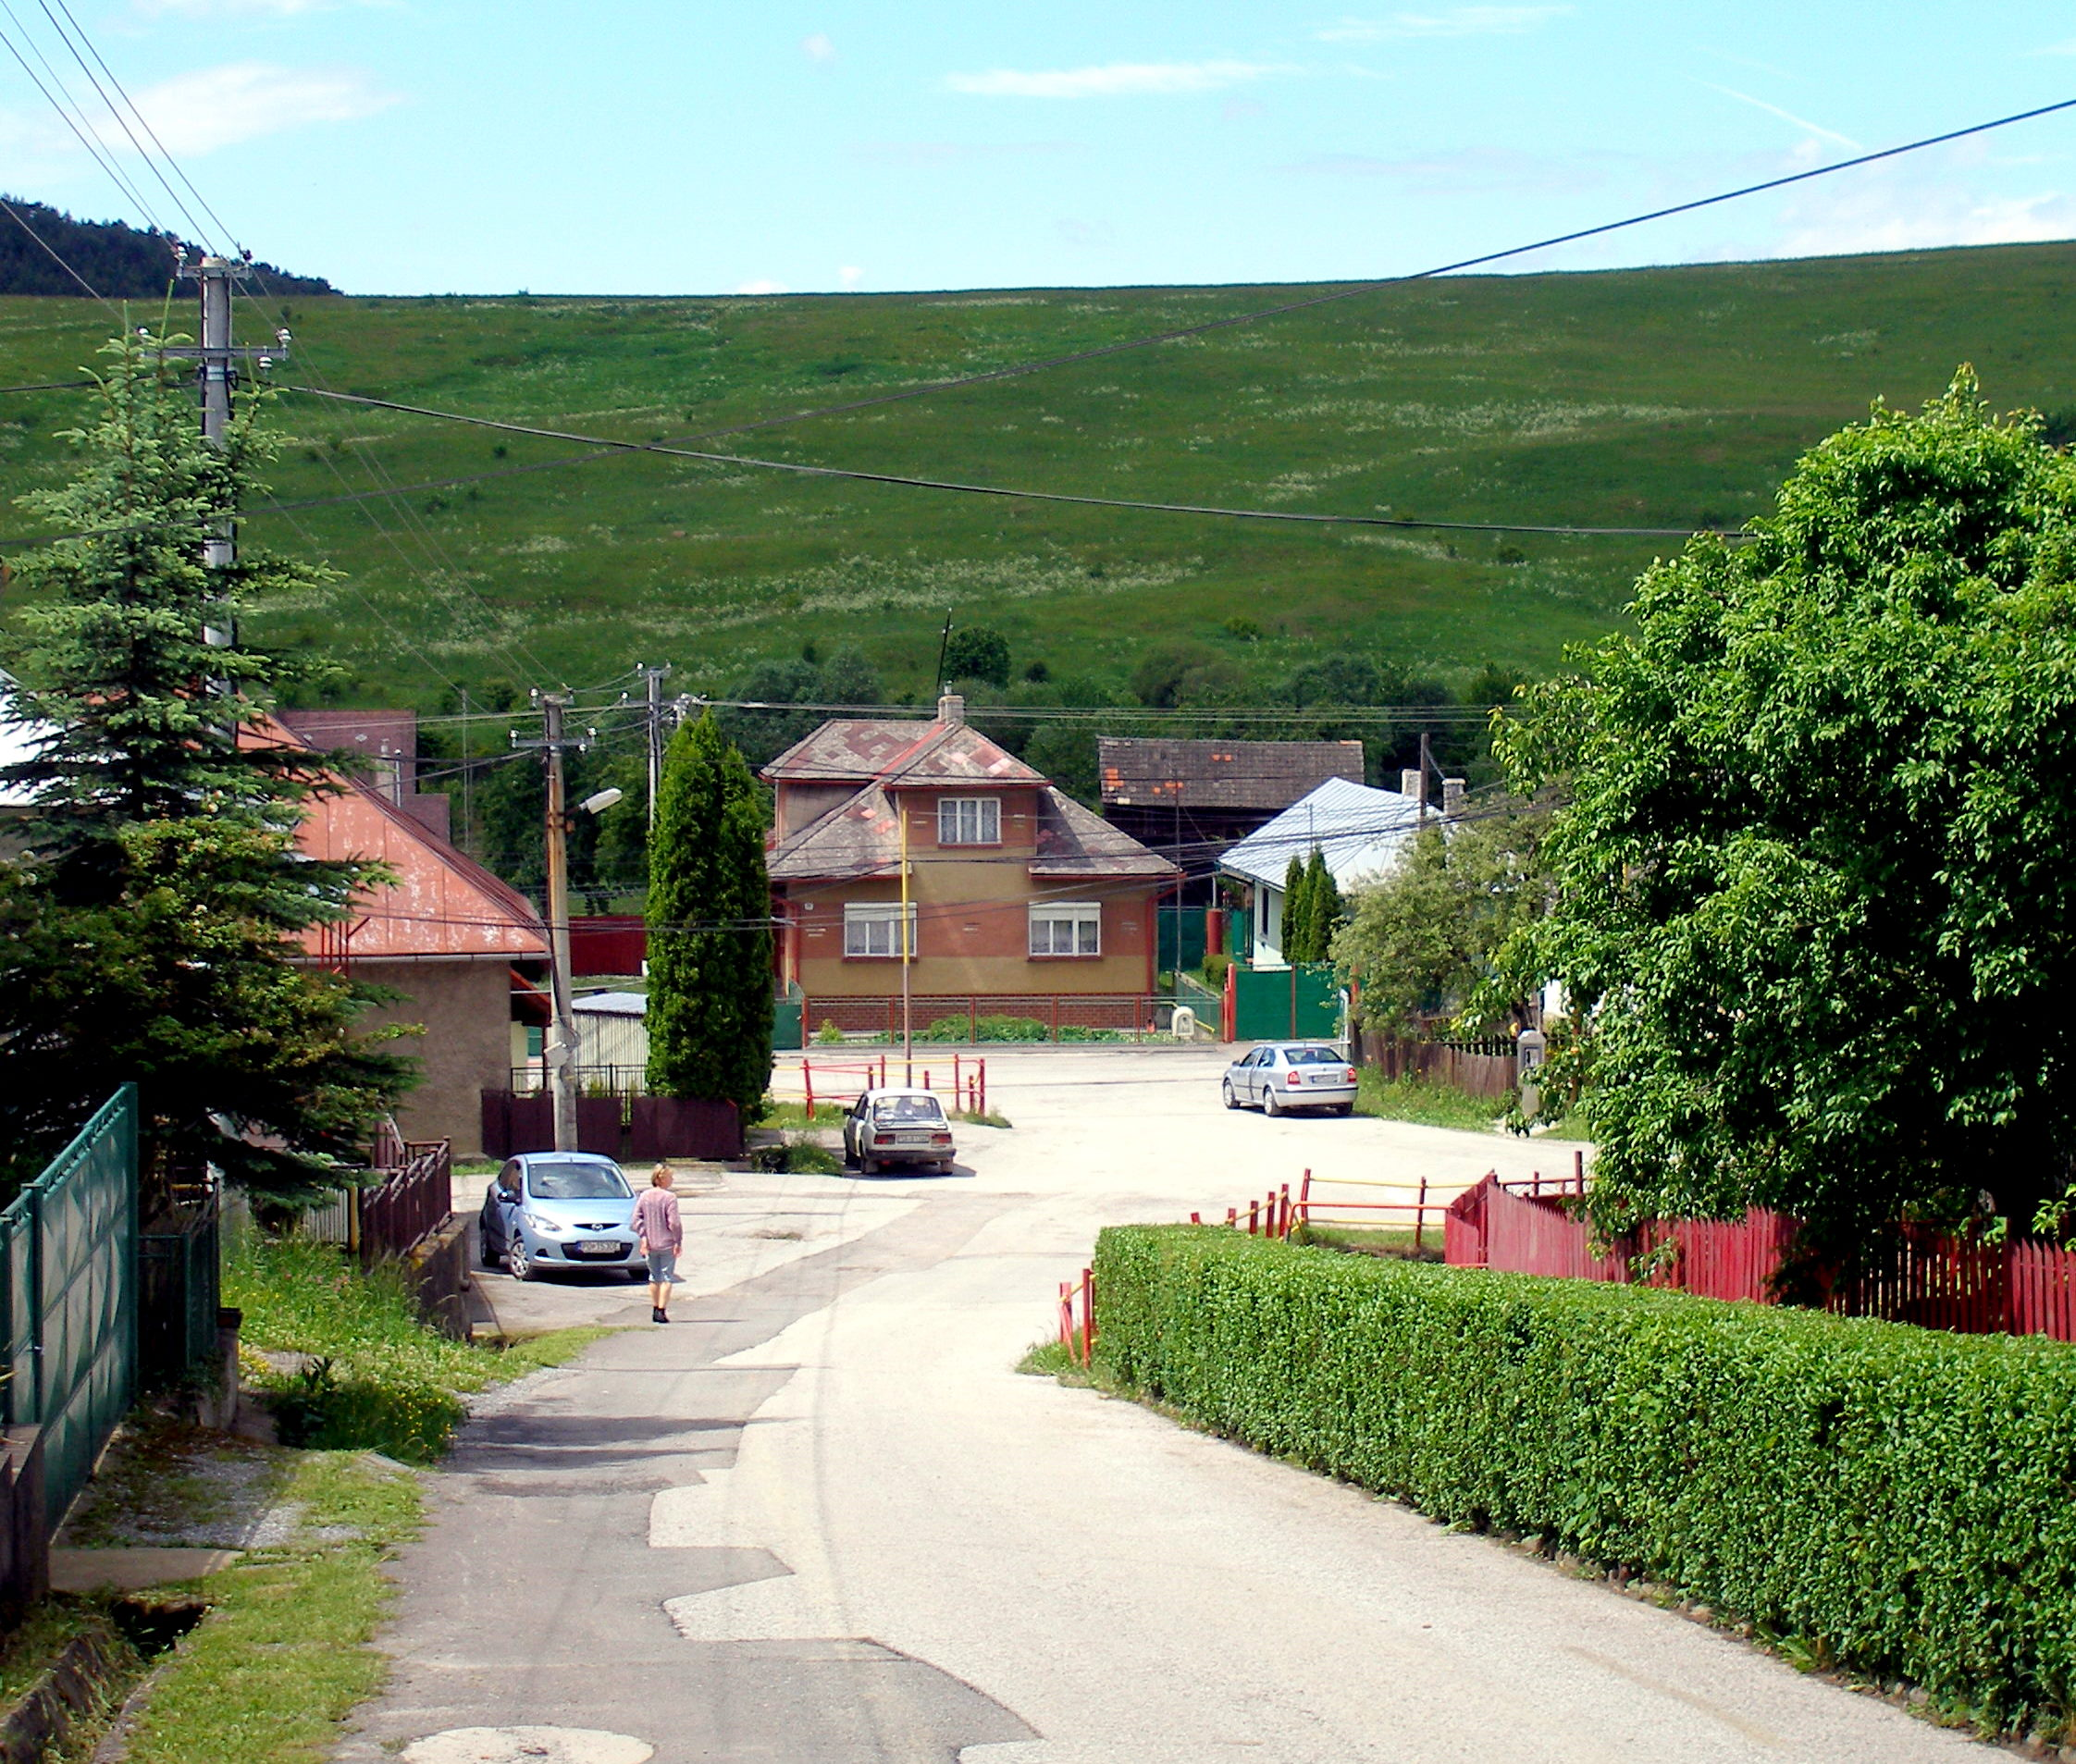 Lúčka, Sabinov District